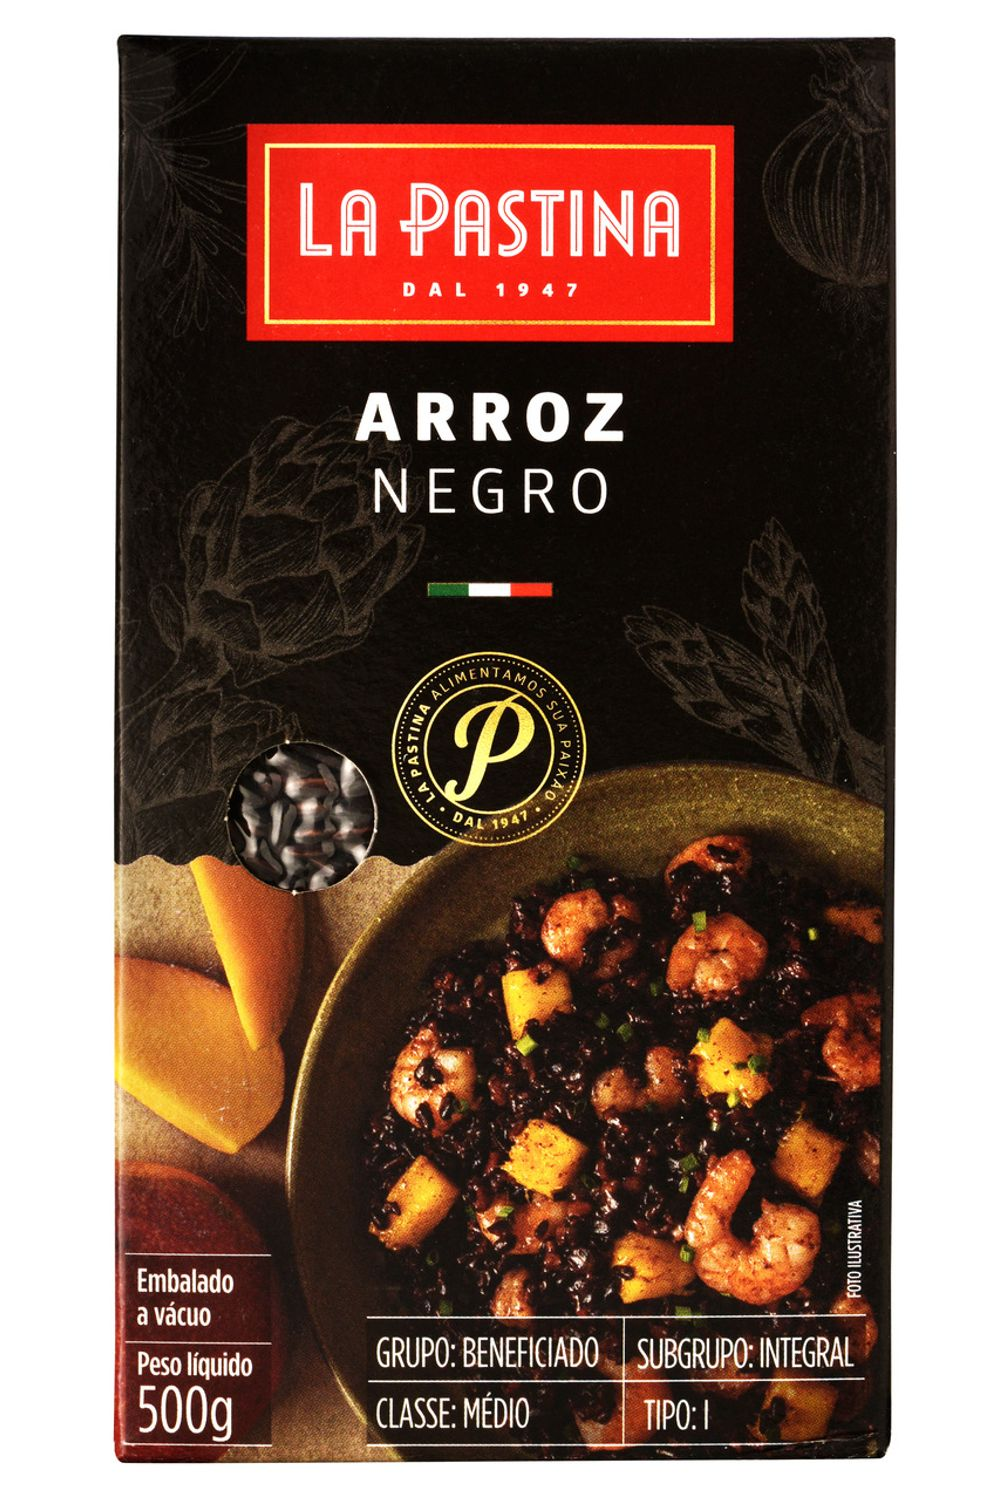 012903-ARROZ-IT-LA-PASTINA-NEGRO-500G_Easy-Resize.com